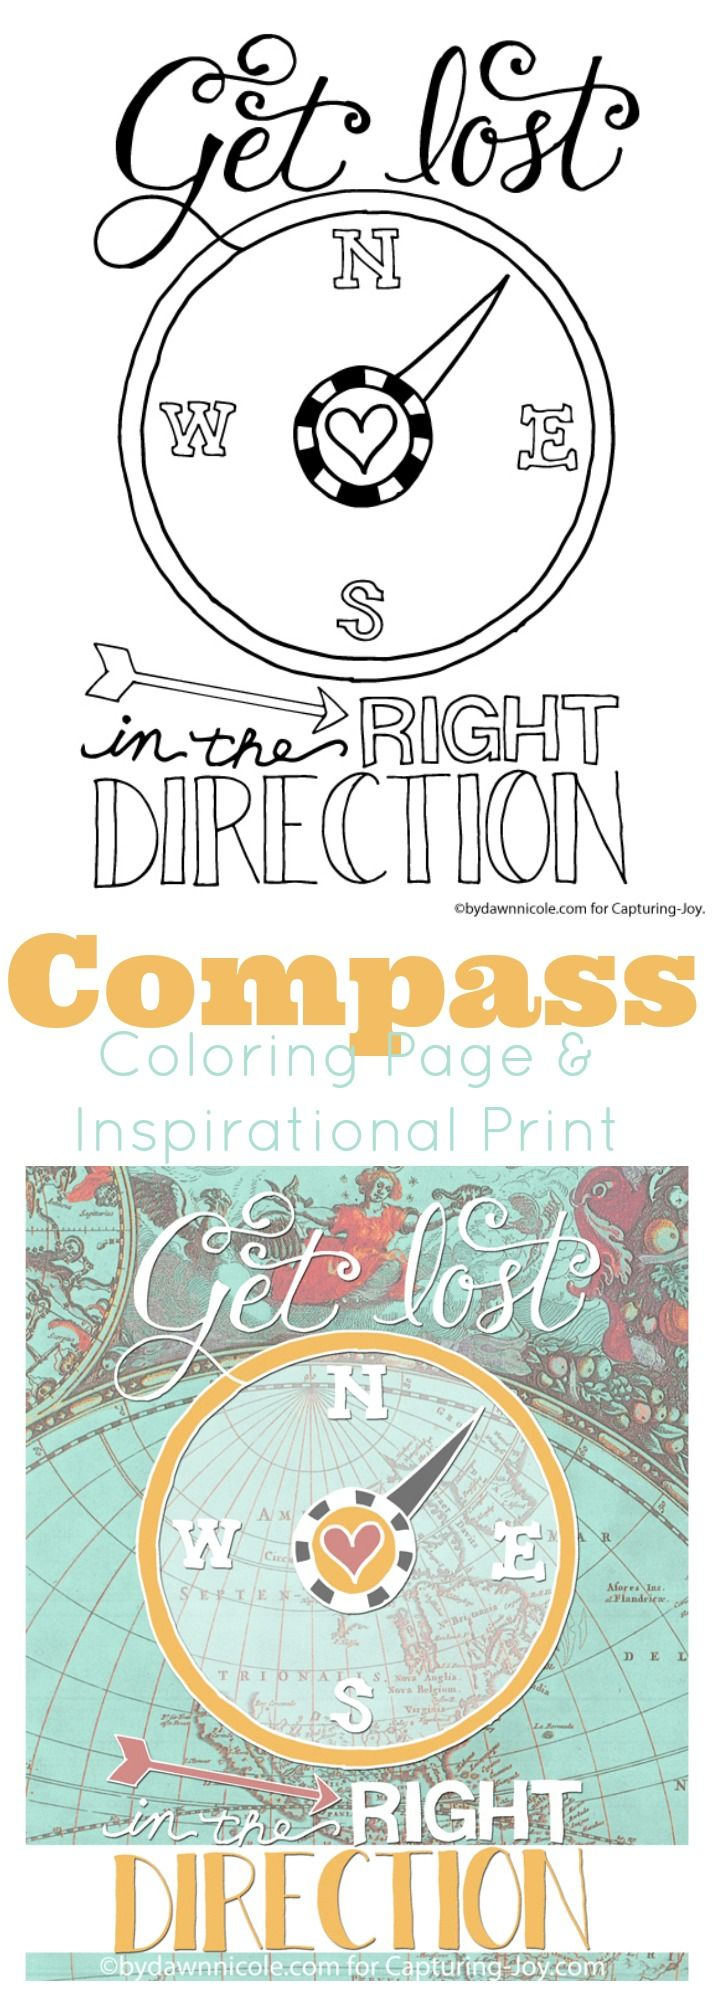 Coloring pages inspirational